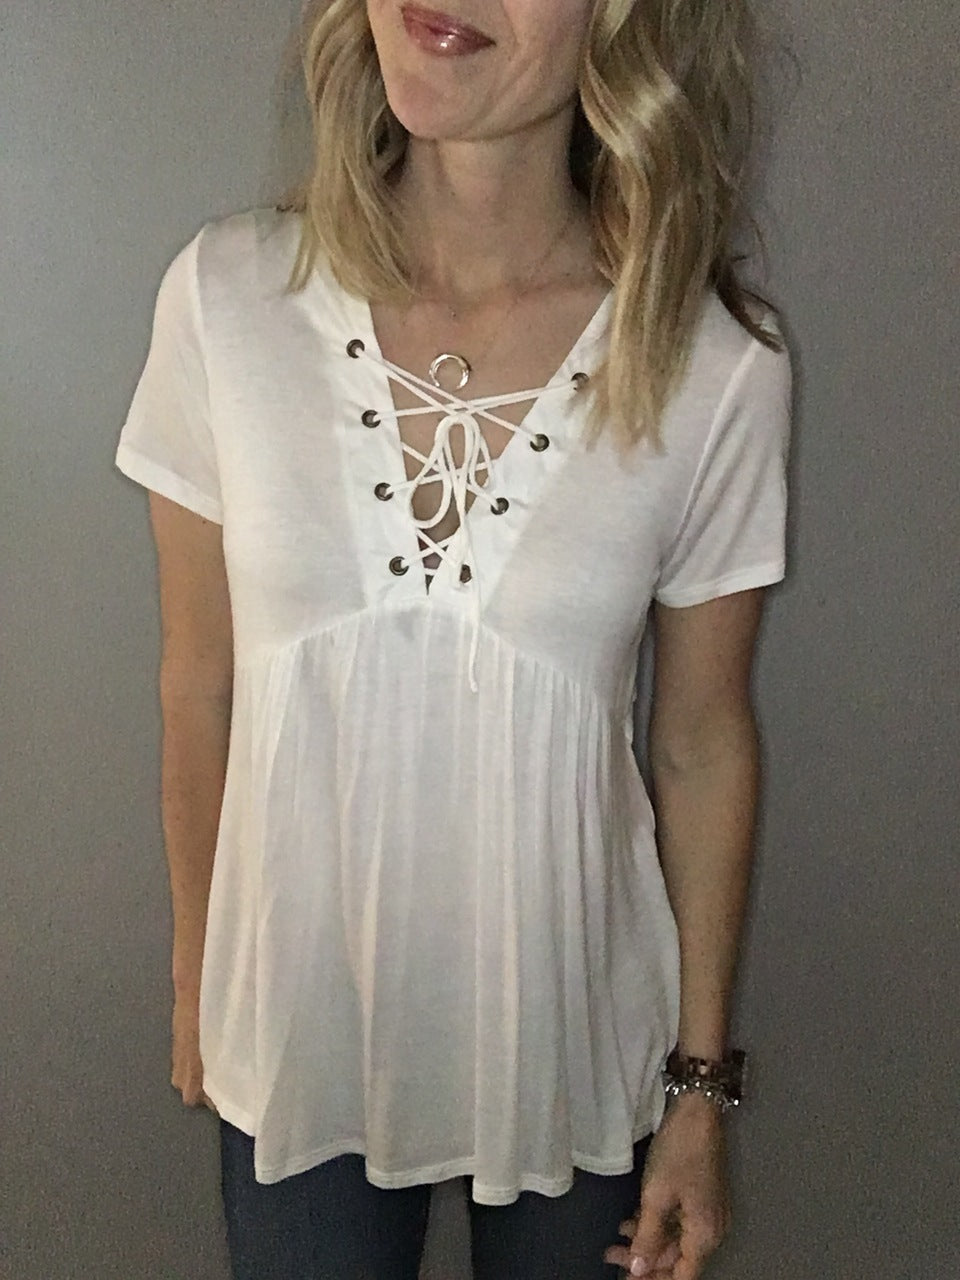 Sweet Innocence Top - White